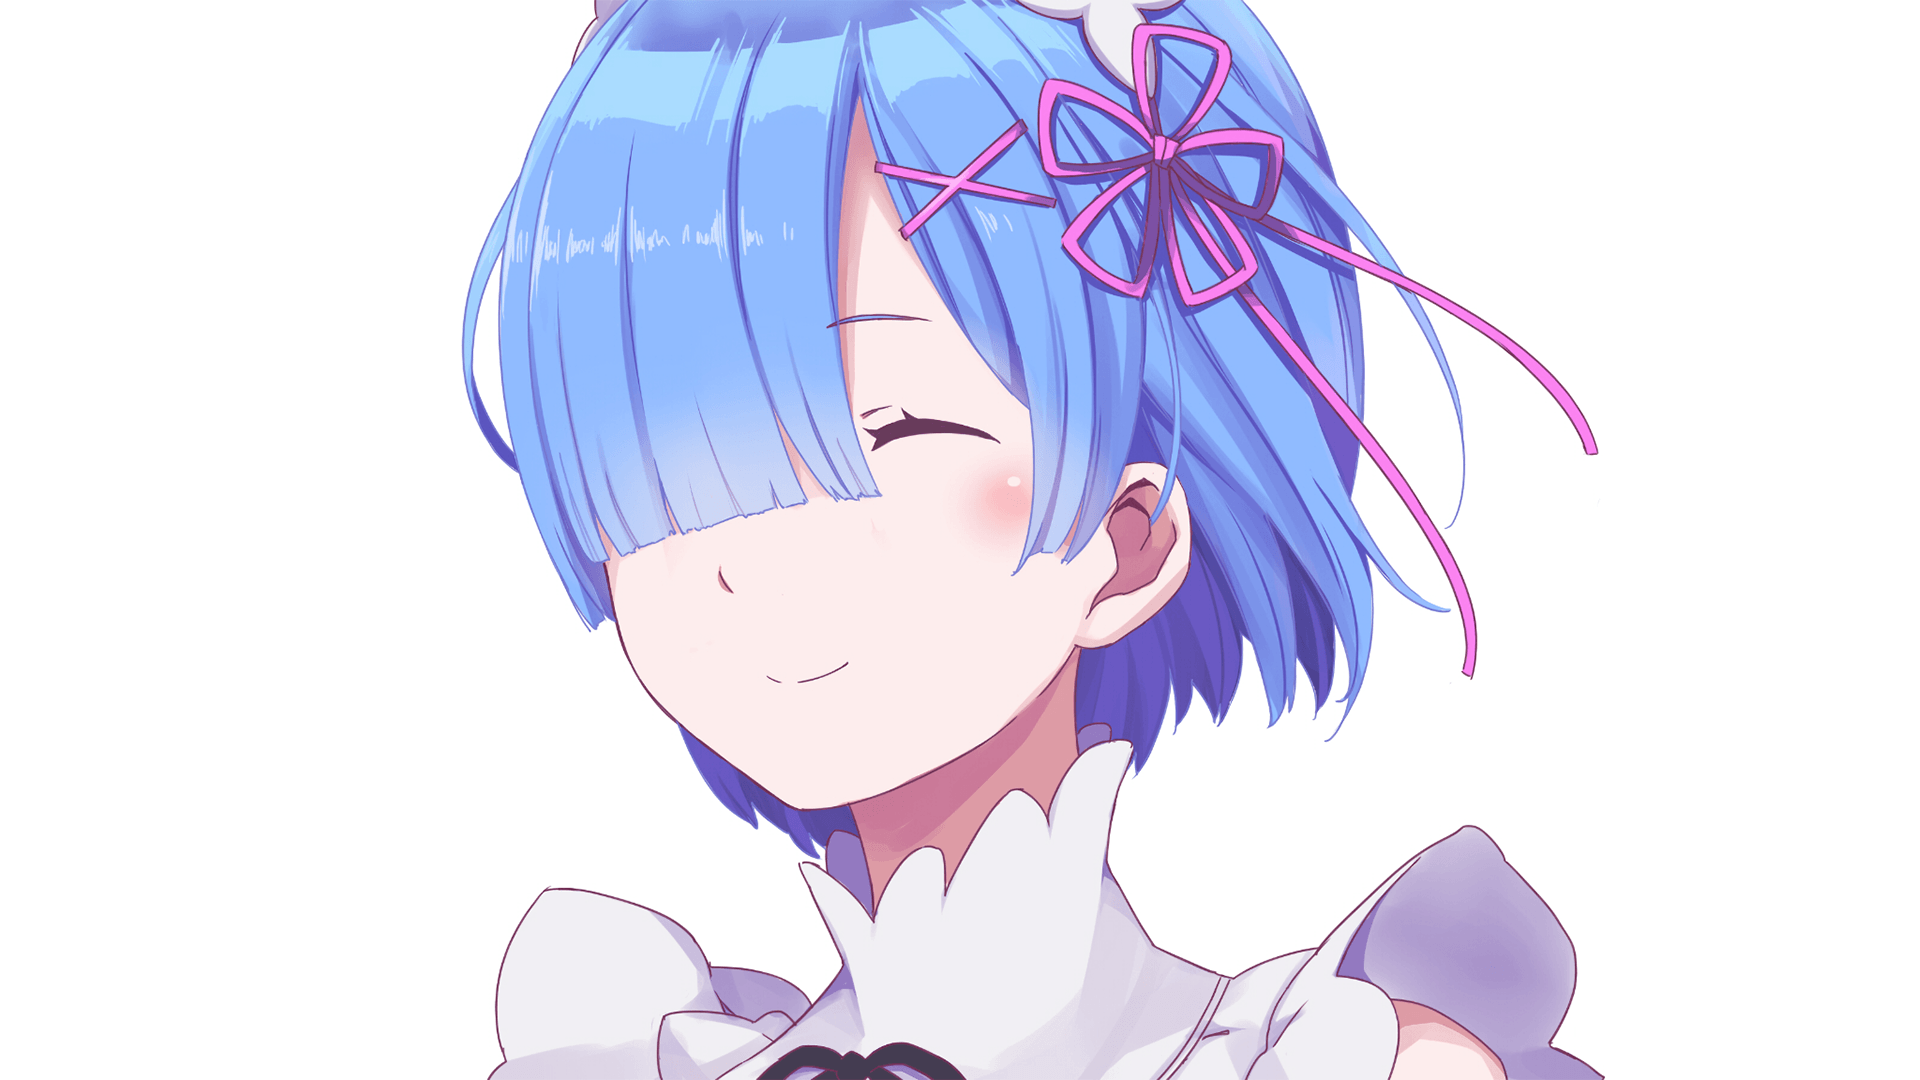 Wallpapers Re:zero, Rem, Smile, Face Portrait